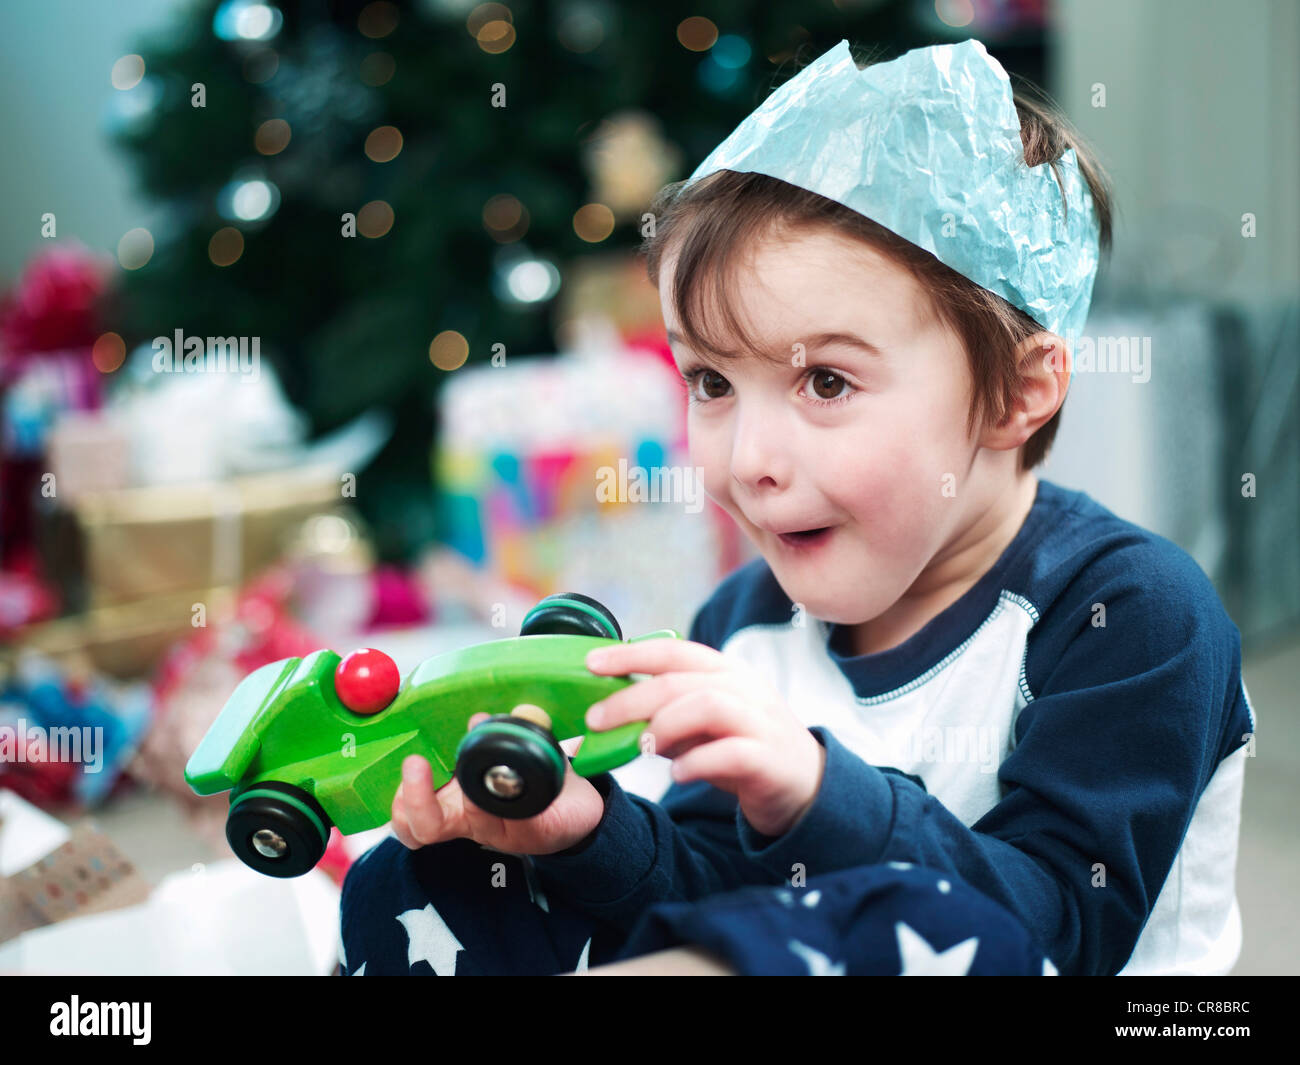 Boy opening christmas presents - Stock Image